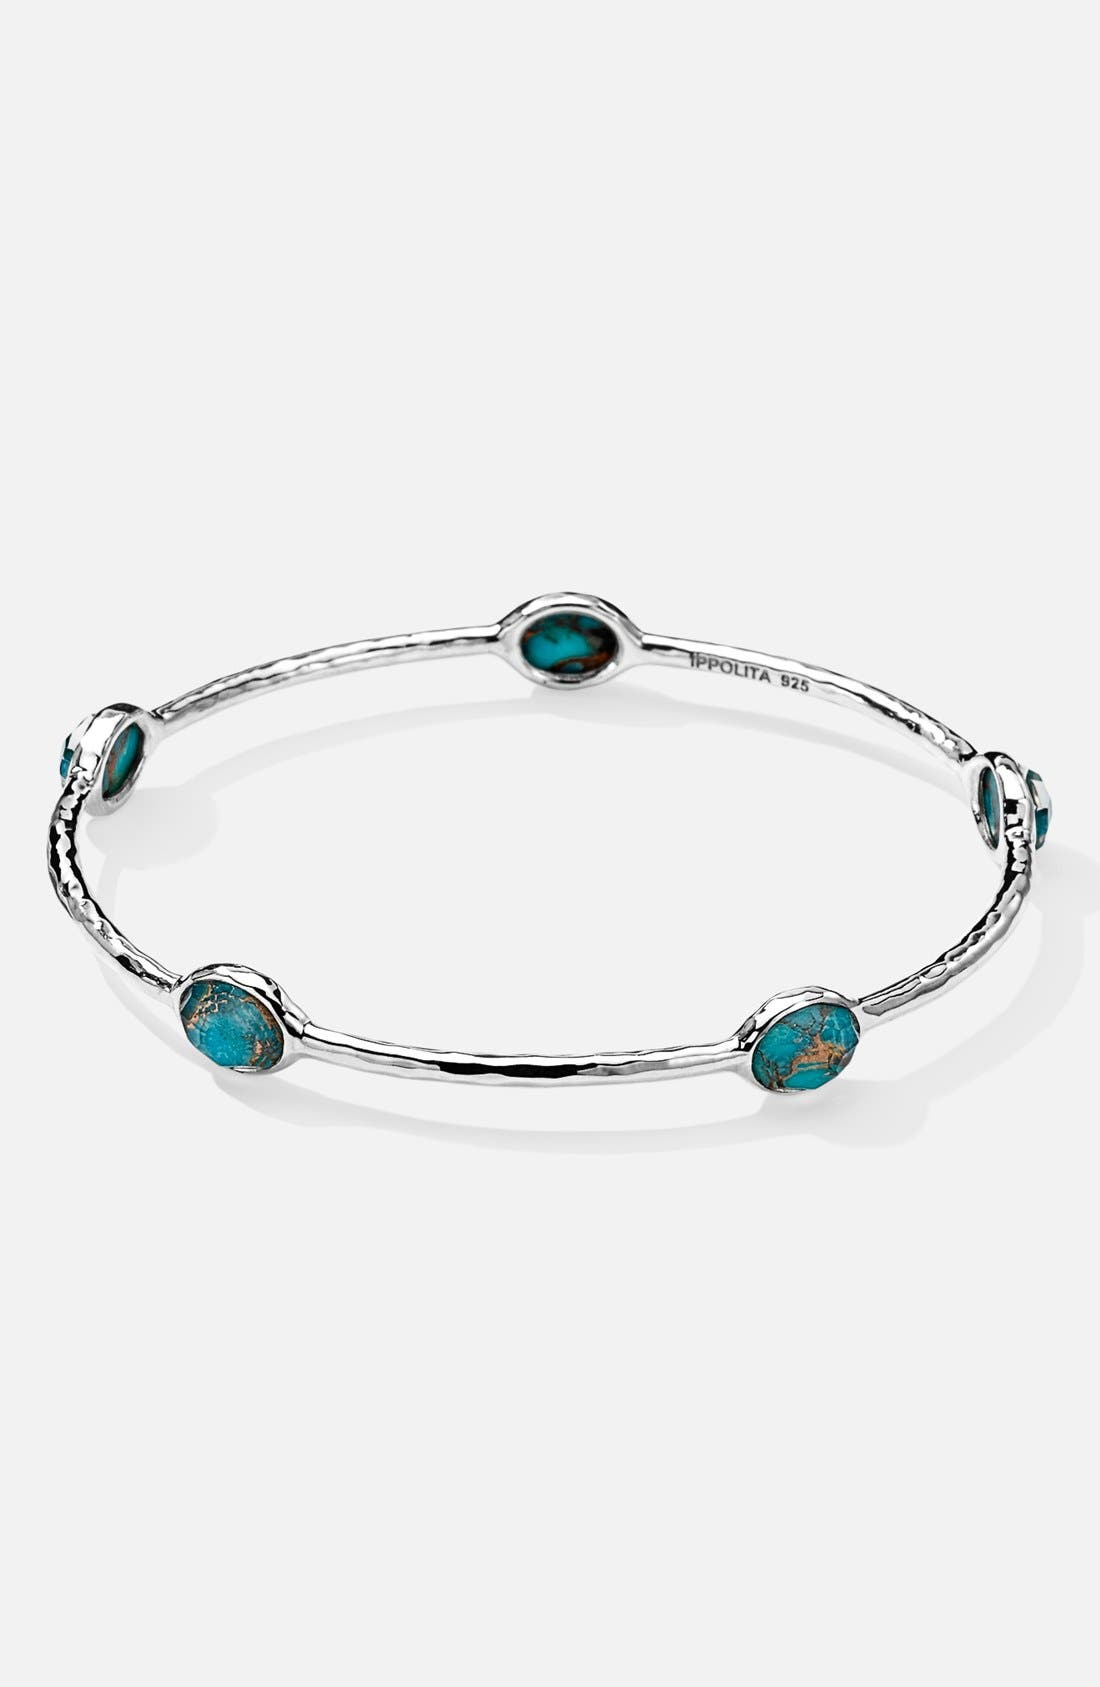 'Rock Candy' 5-Stone Blue Topaz Bangle,                         Main,                         color, Silver/ Bronze Turquoise